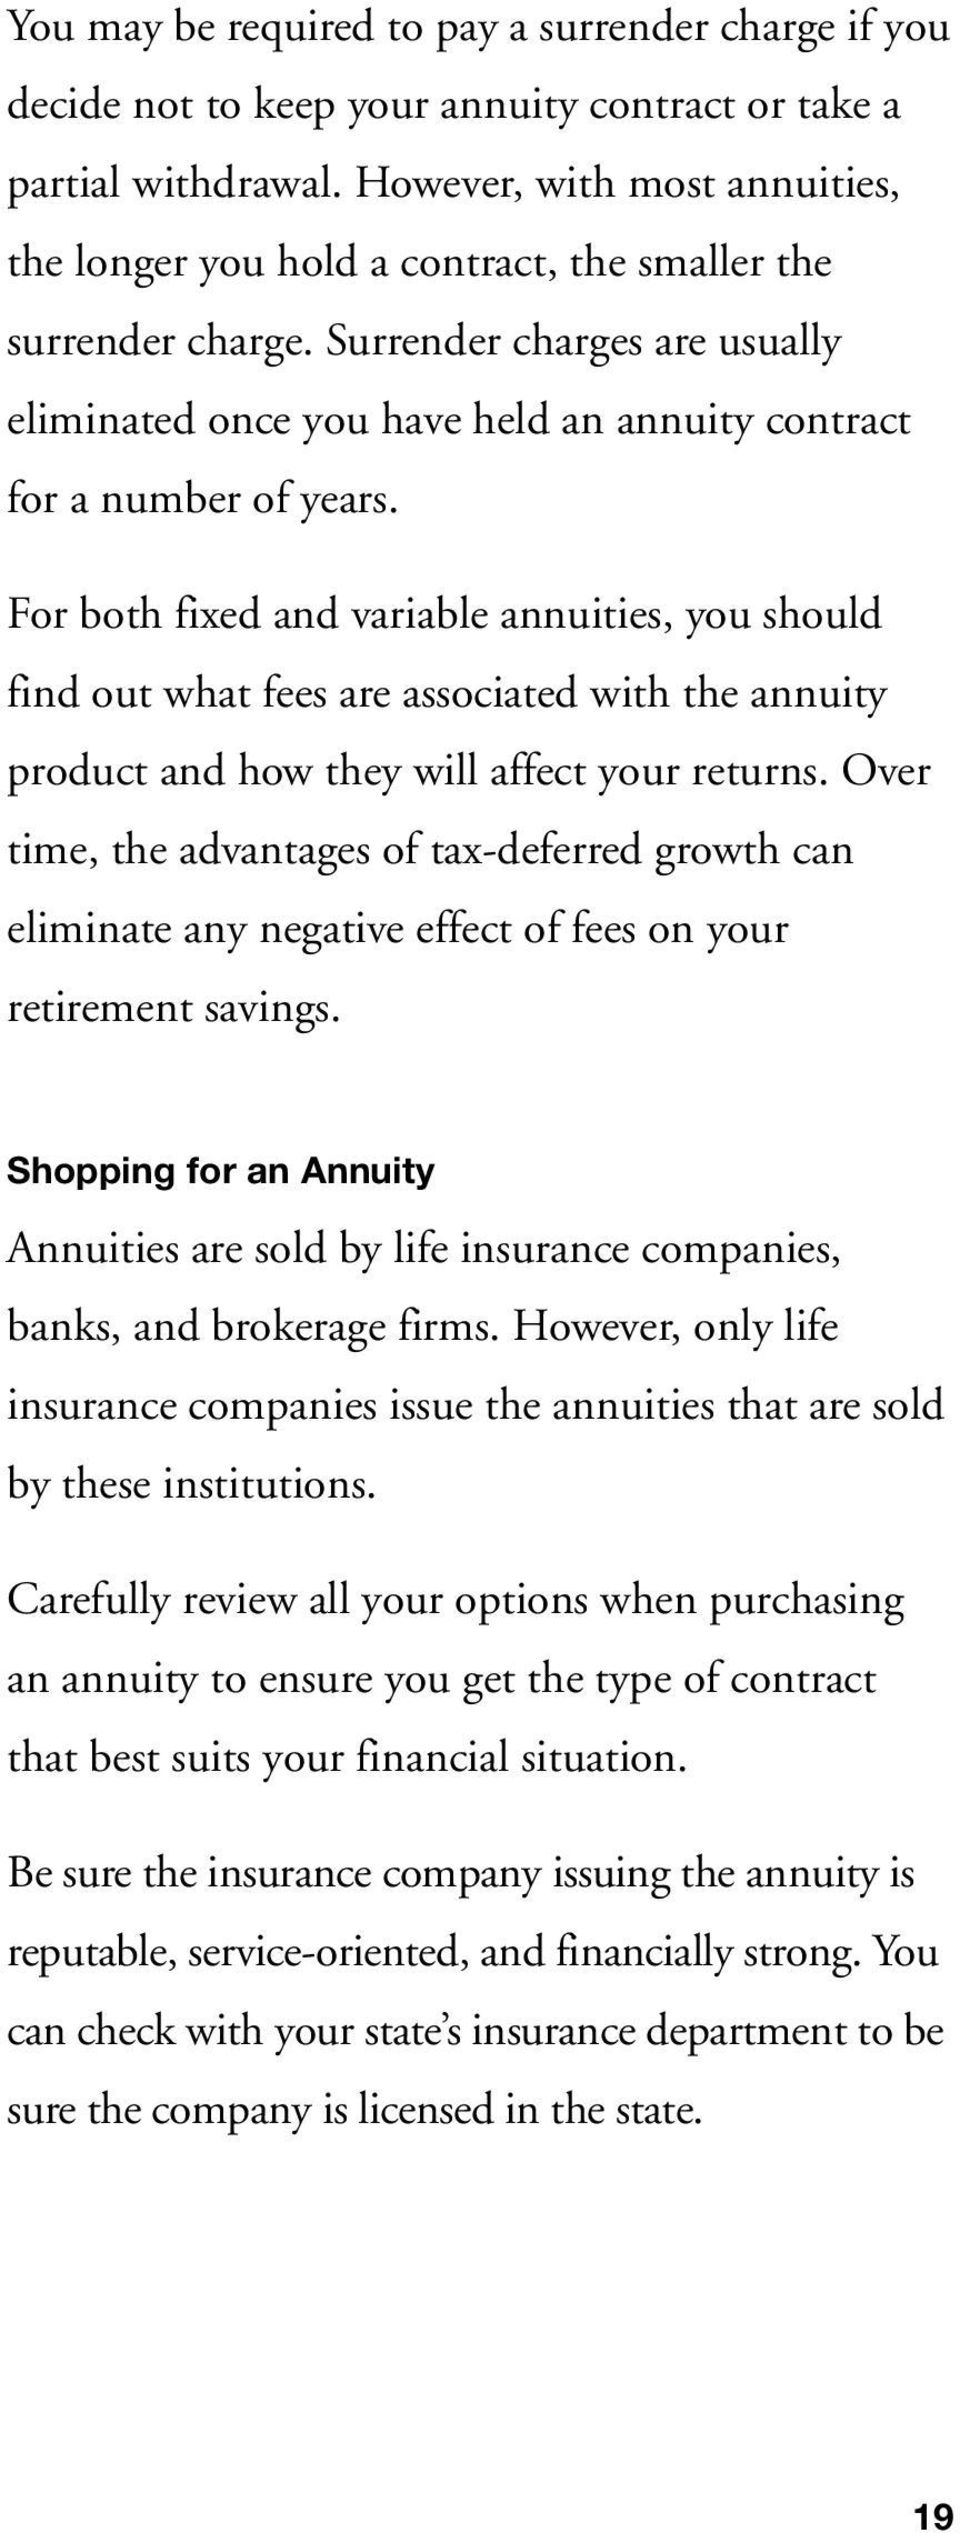 For both fixed and variable annuities, you should find out what fees are associated with the annuity product and how they will affect your returns.